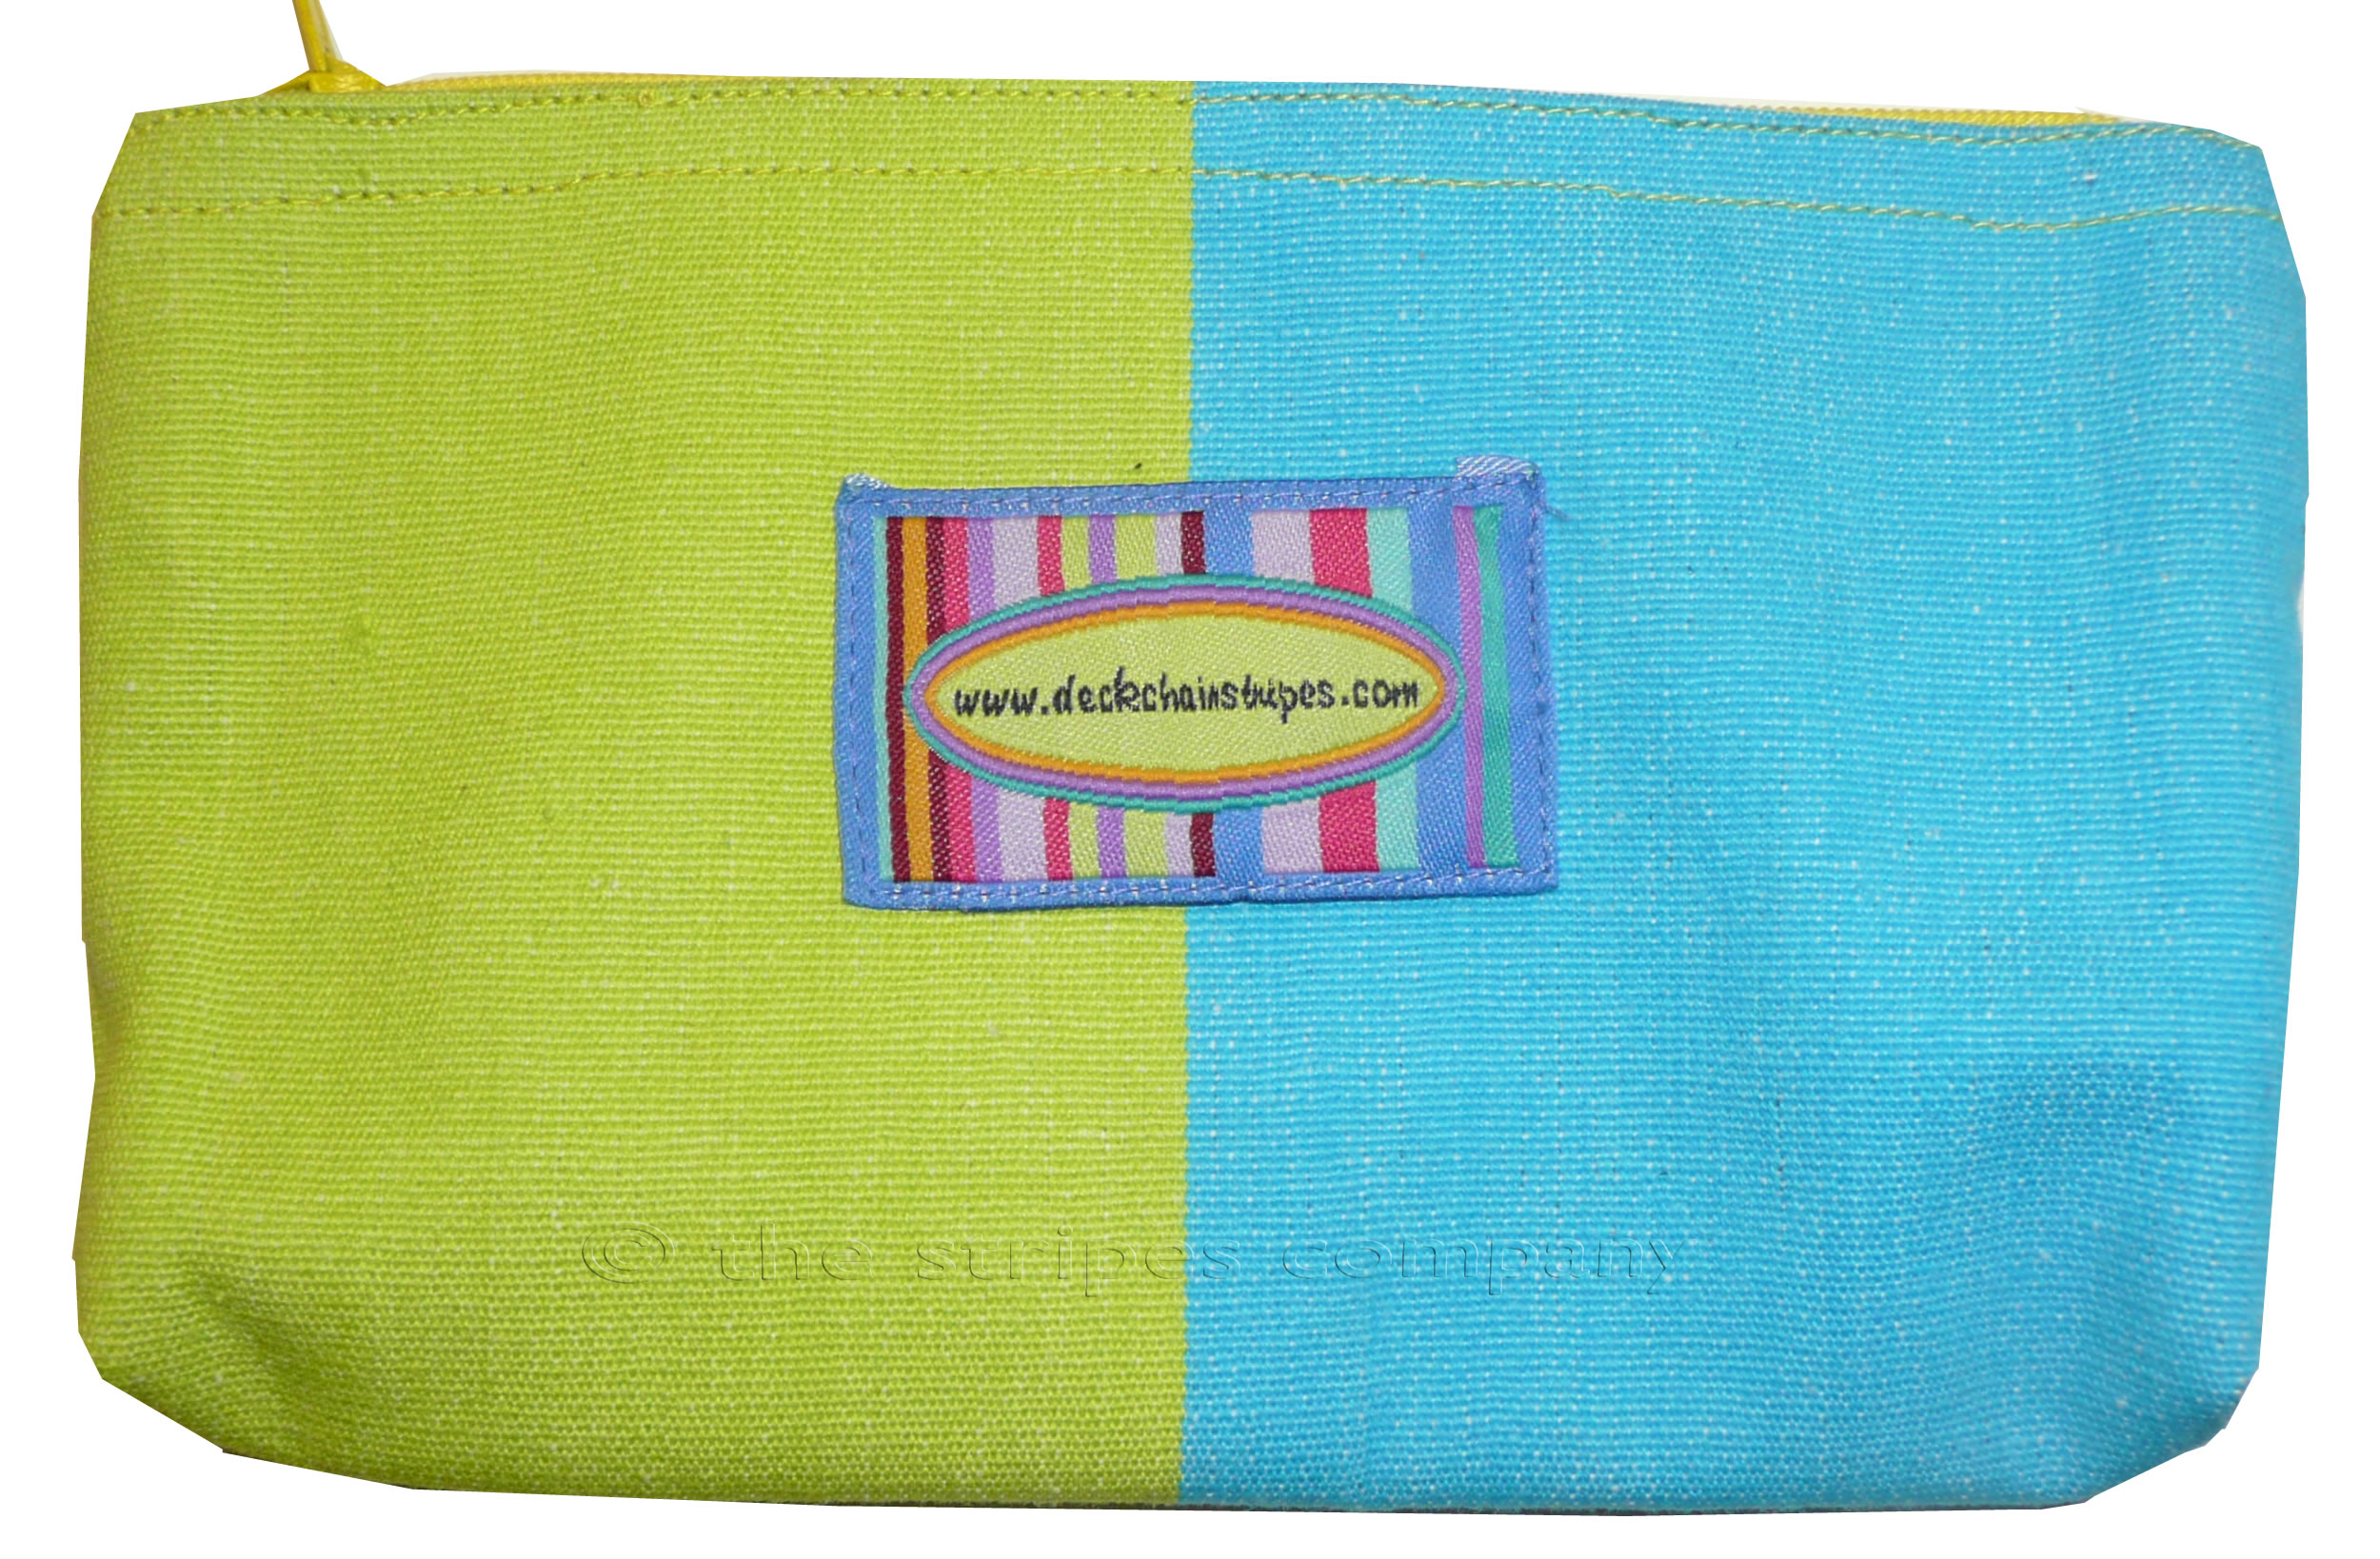 Turquoise and Green Striped Purses | Small Zipped Bags | Cosmetic Bags